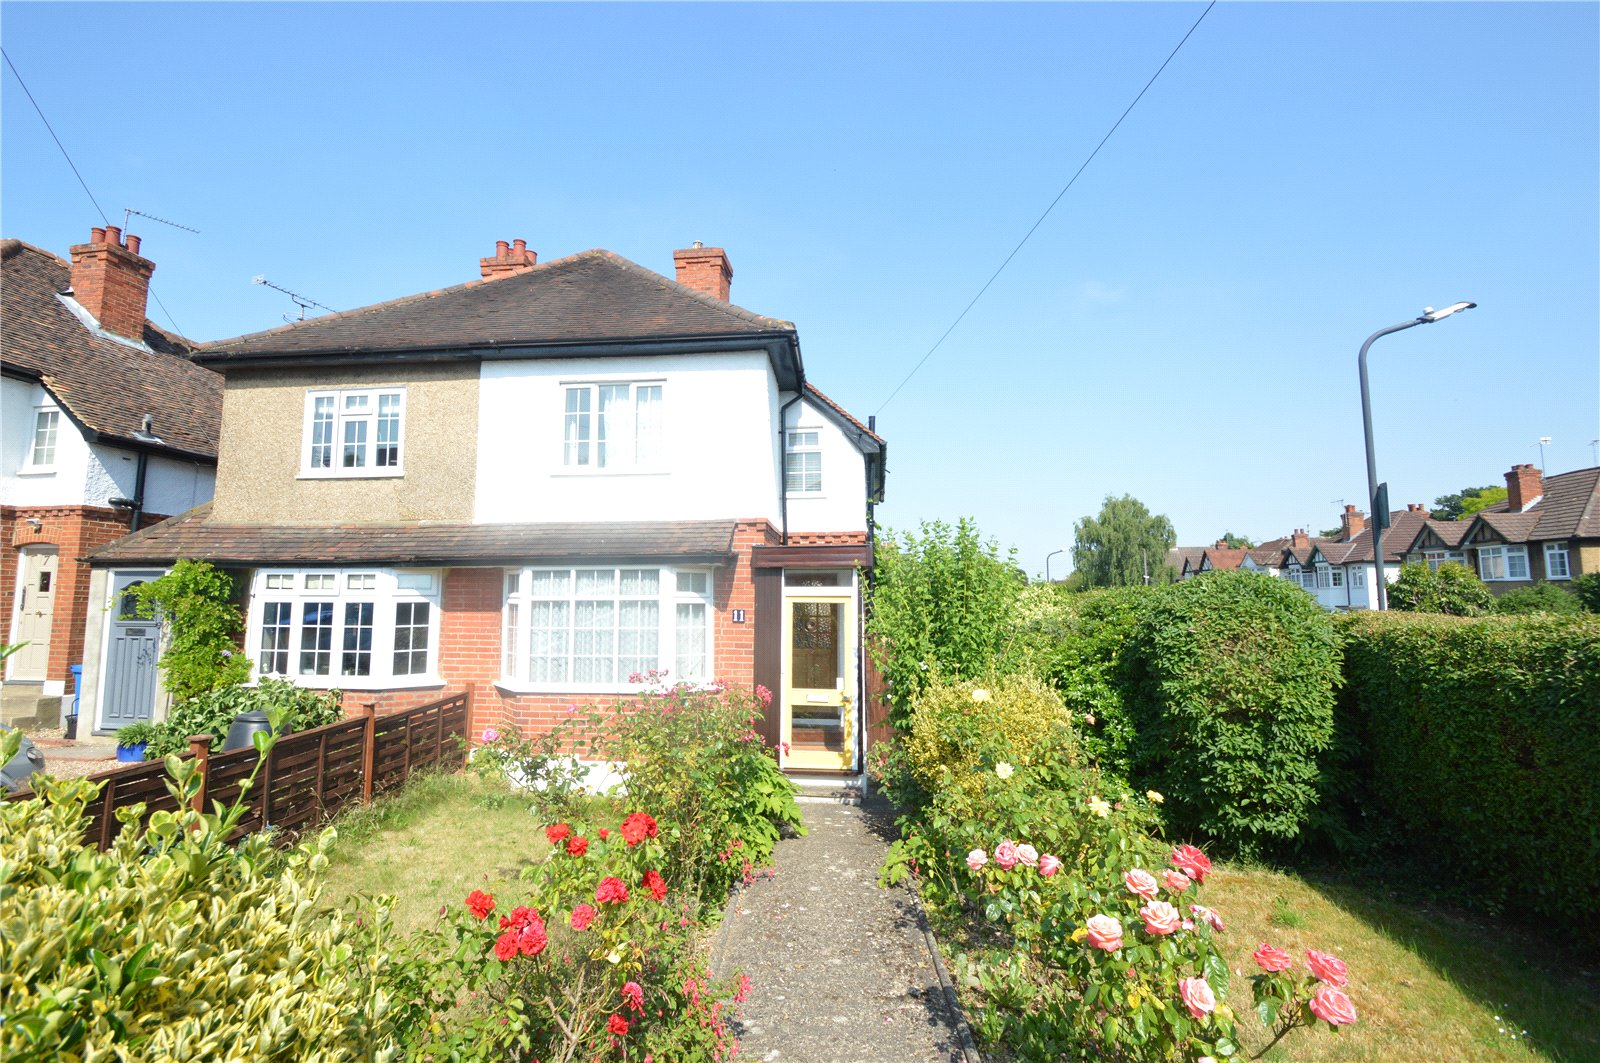 3 Bedrooms Semi Detached House for sale in College Road, Maidenhead, Berkshire, SL6